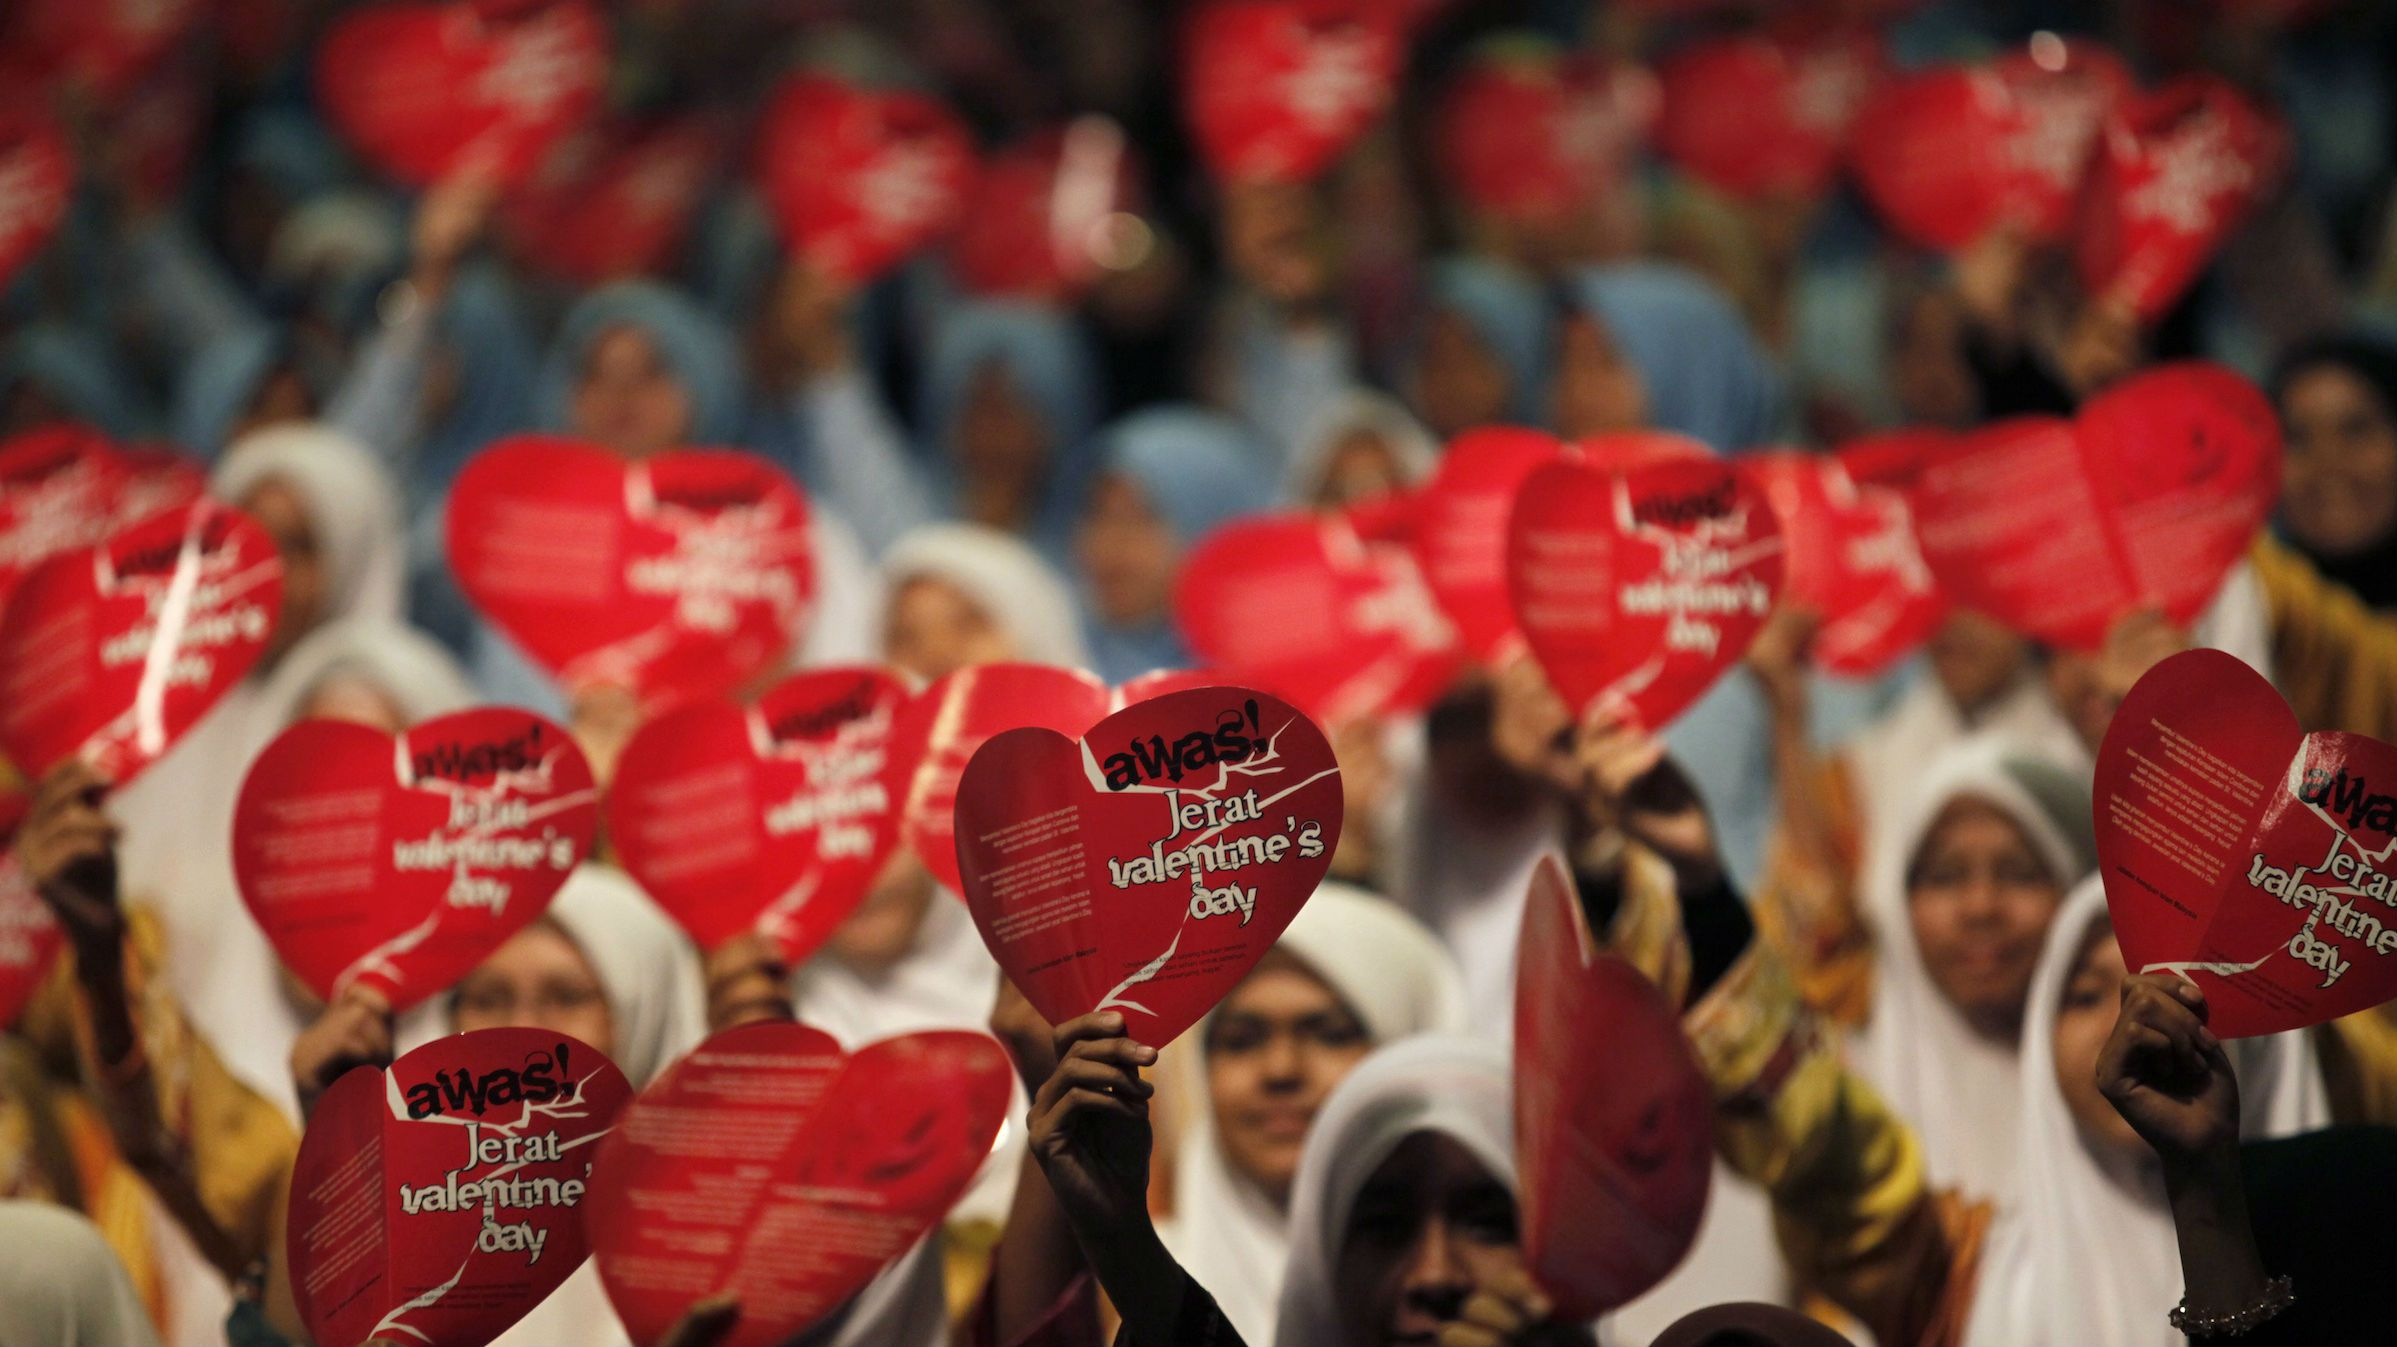 Muslim women at an anti-Valentine's Day Campaign outside Kuala Lumpur in 2011.